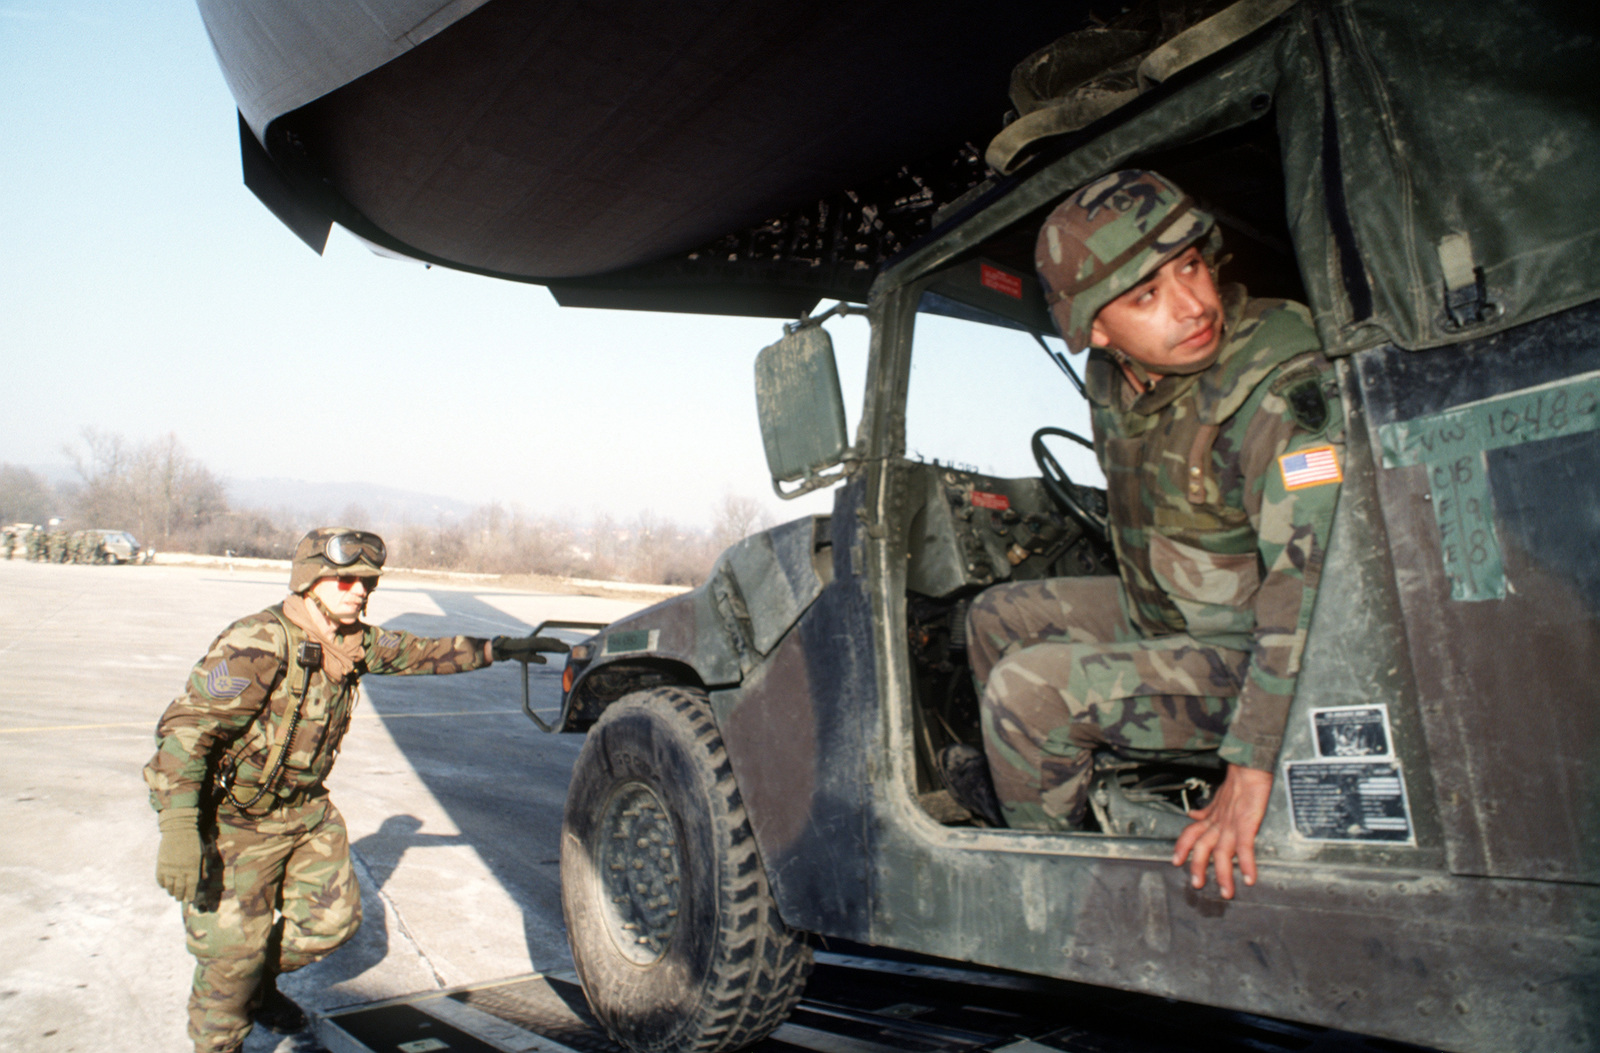 TSG Stewart Smith (right), of 621st Aerial Port Squadron, McGuire Air Force Base, New Jersey, directs SPC William Arnold of Delta Battery, 319th Field Artillery, Vicenza, Italy, as he backs up the High-Mobility Multipurpose Wheeled Vehicle (HMMWV) into the C-17 Globemaster III for redeployment during JOINT ENDEAVOR